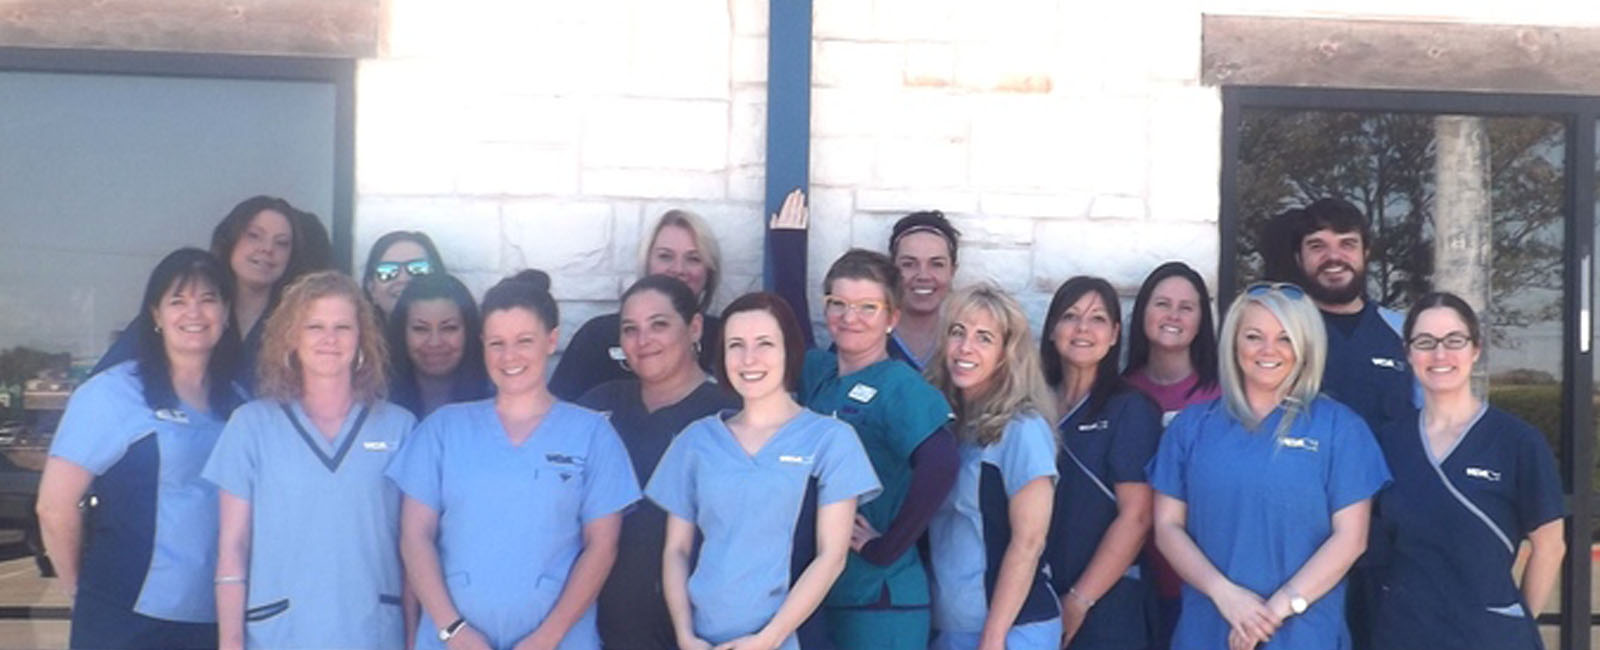 Homepage Team Picture of VCA Fort Worth Animal Hospital